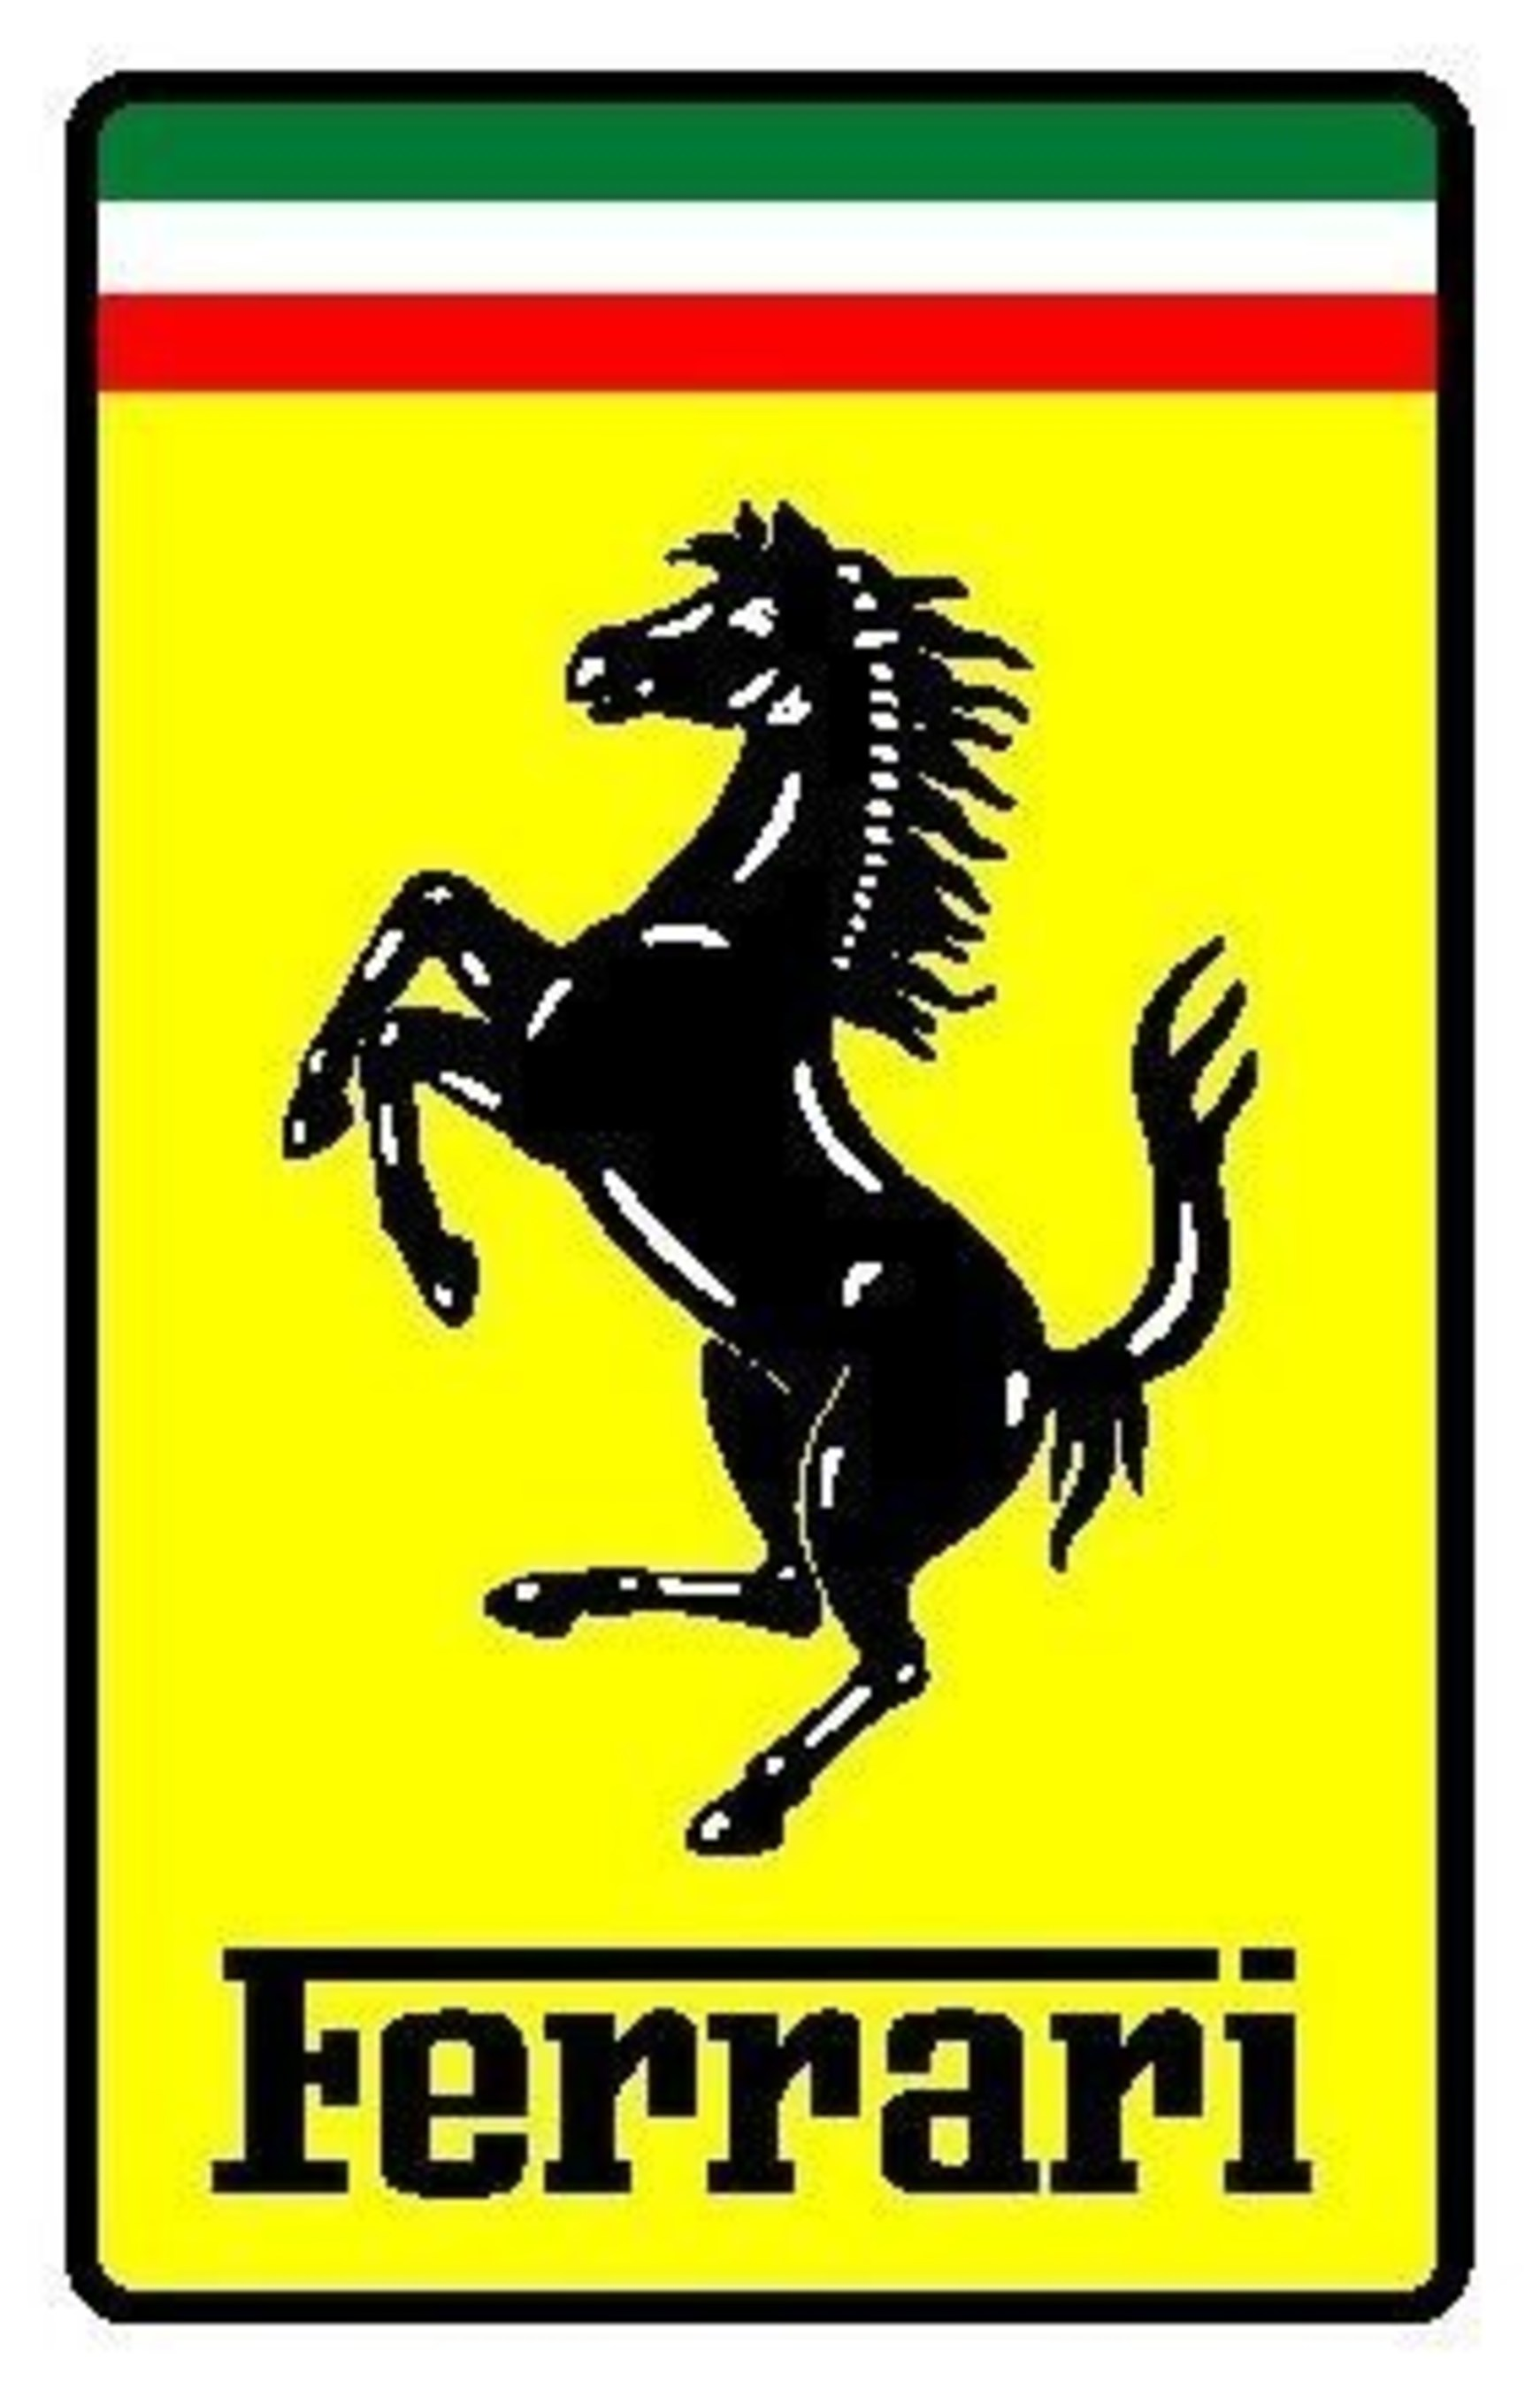 Ferrari is among the world's leading luxury brands focused on the design, engineering, production and sale ...